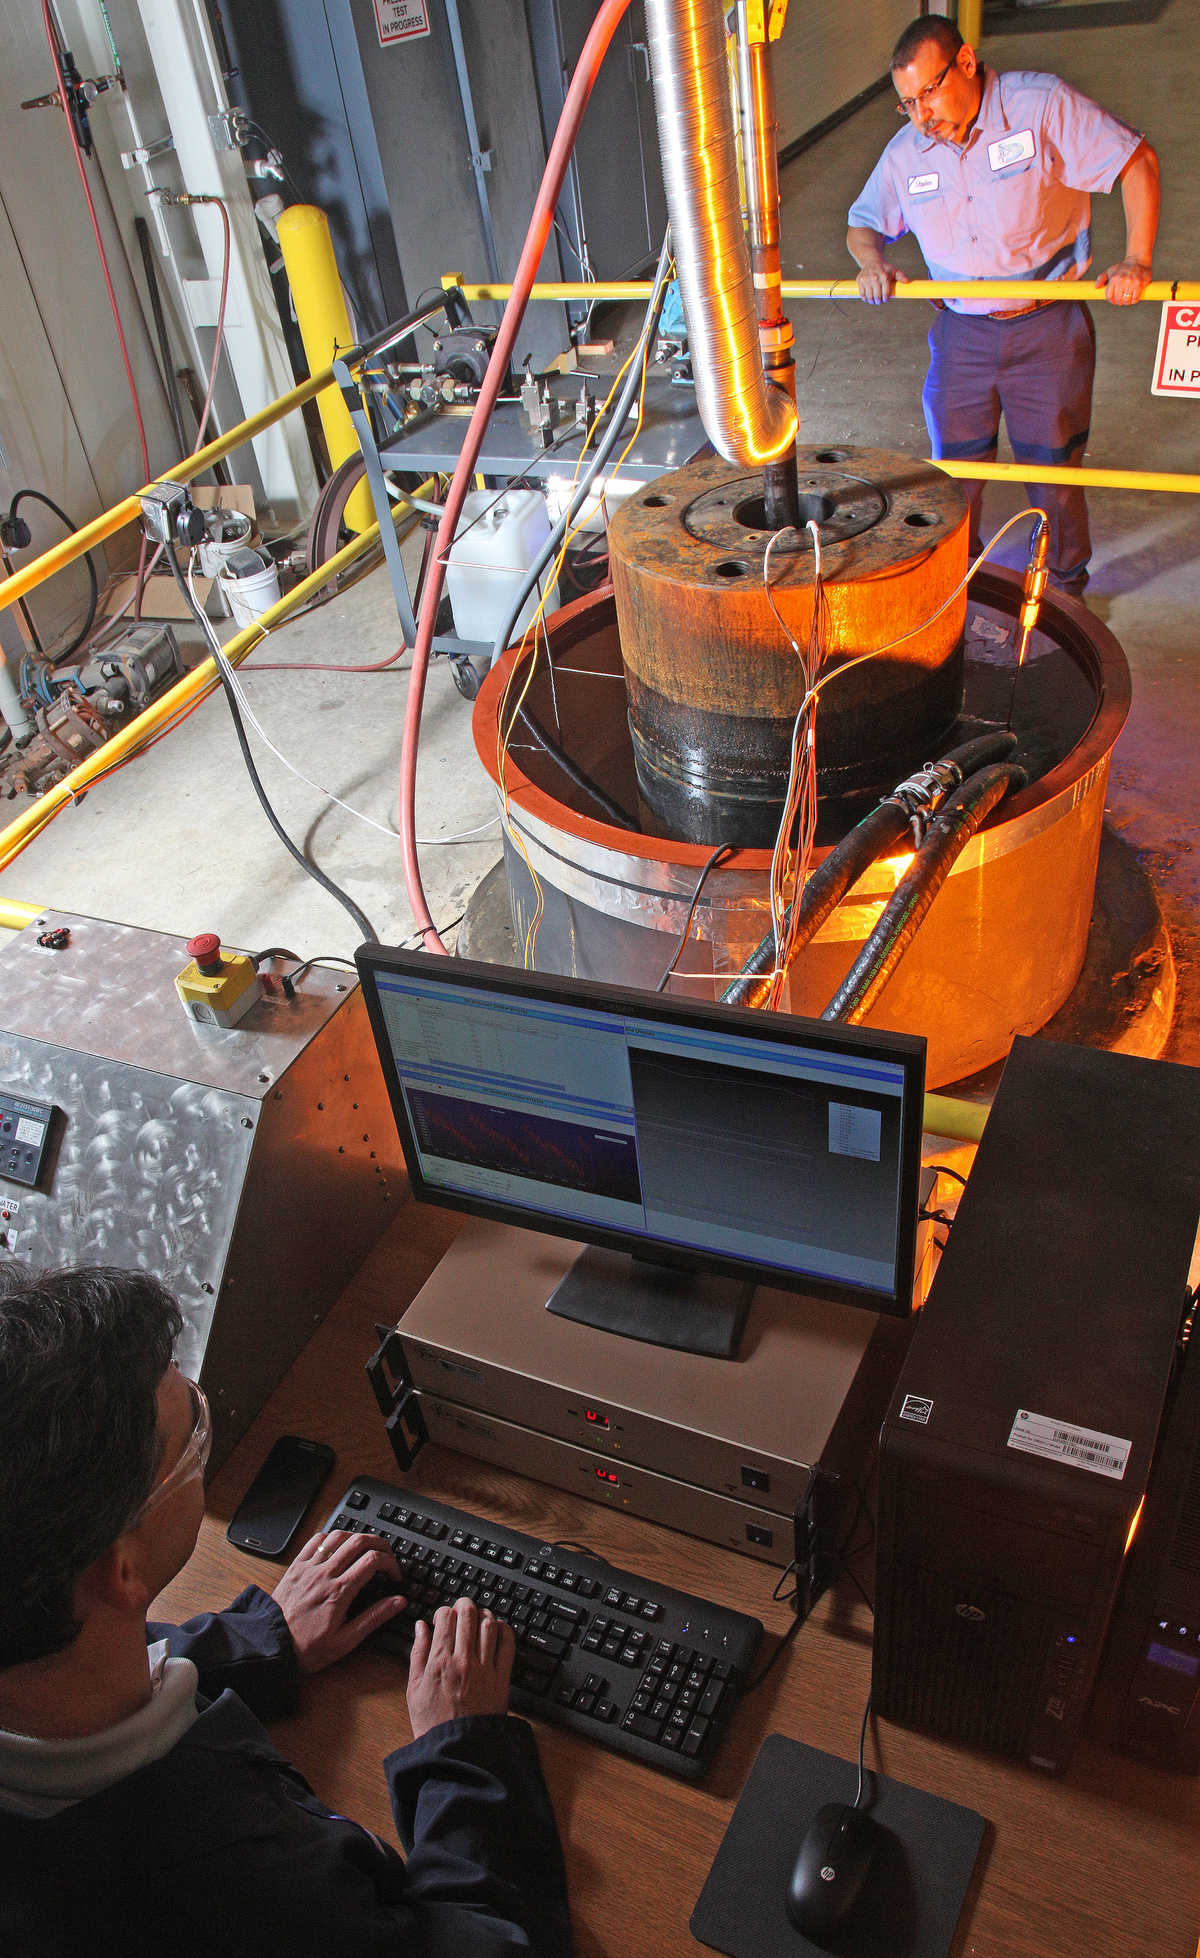 SwRI has added five, 13-inch-diameter chambers in its Ocean Simulation Laboratory for deep water simulation testing.